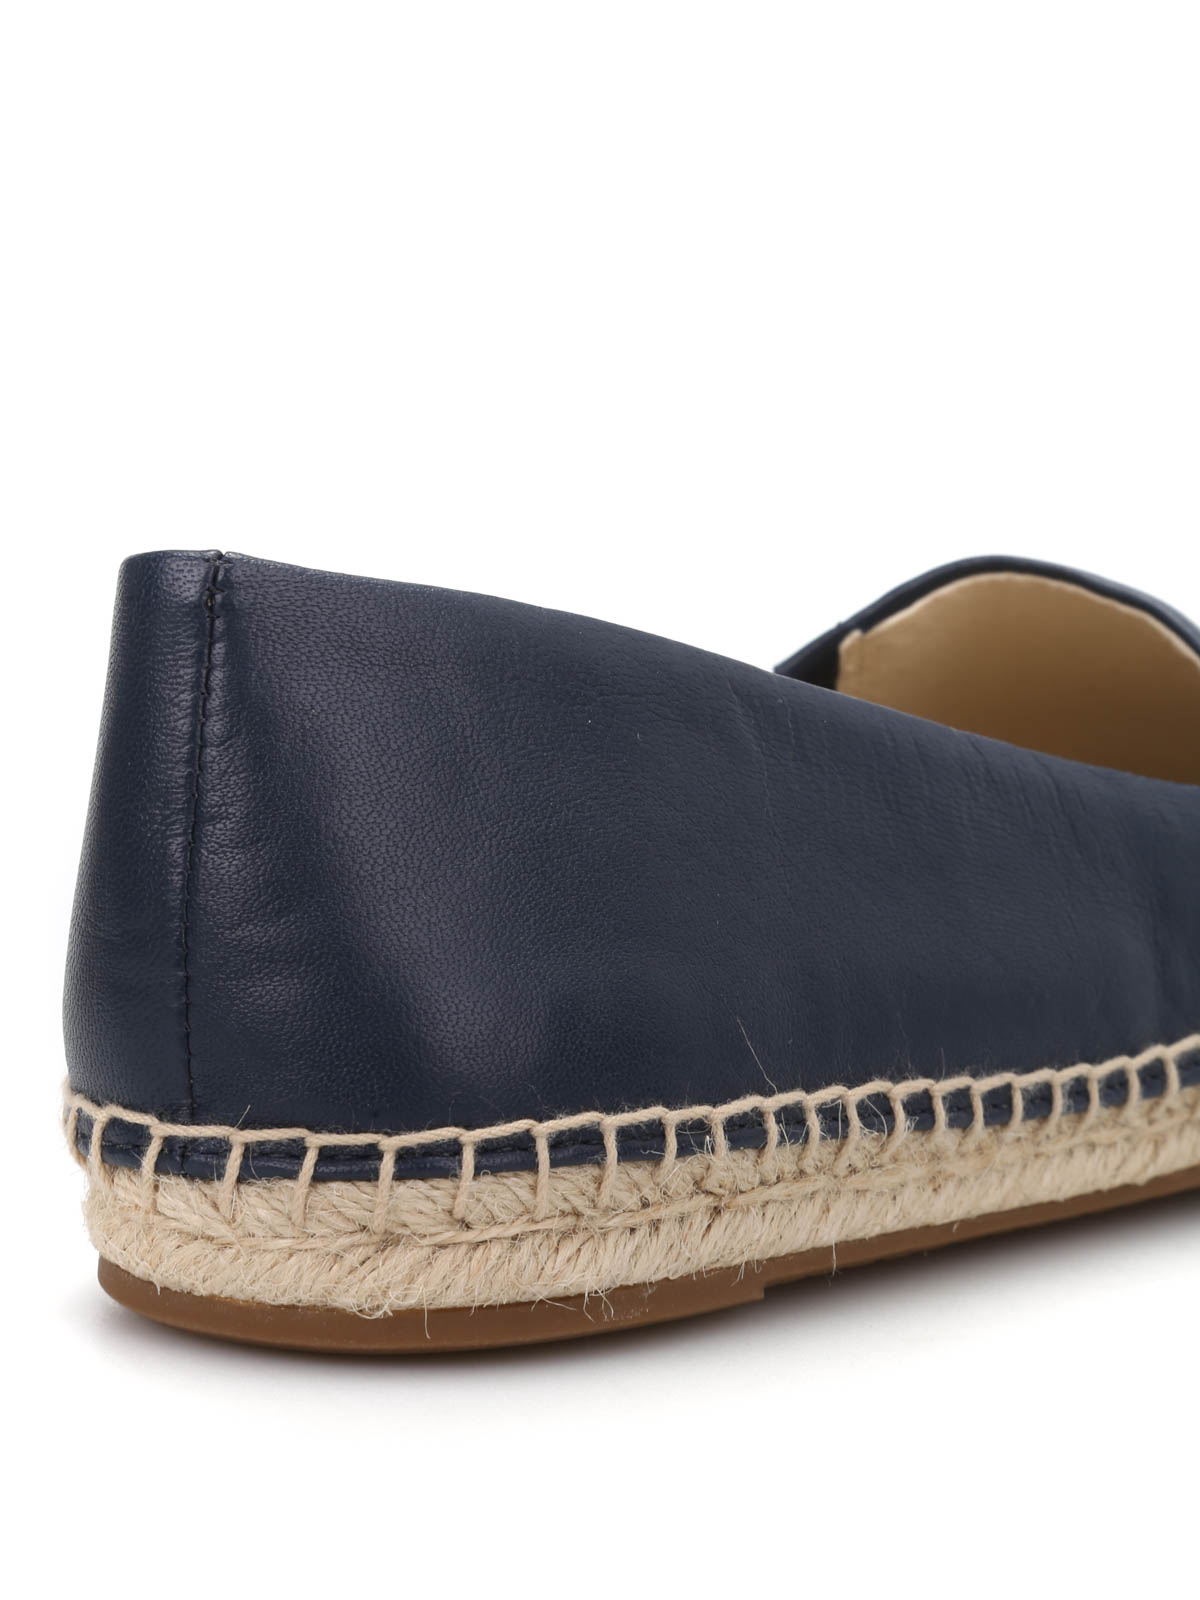 espadrillas fur damen blau von michael kors espadrillas ikrix. Black Bedroom Furniture Sets. Home Design Ideas